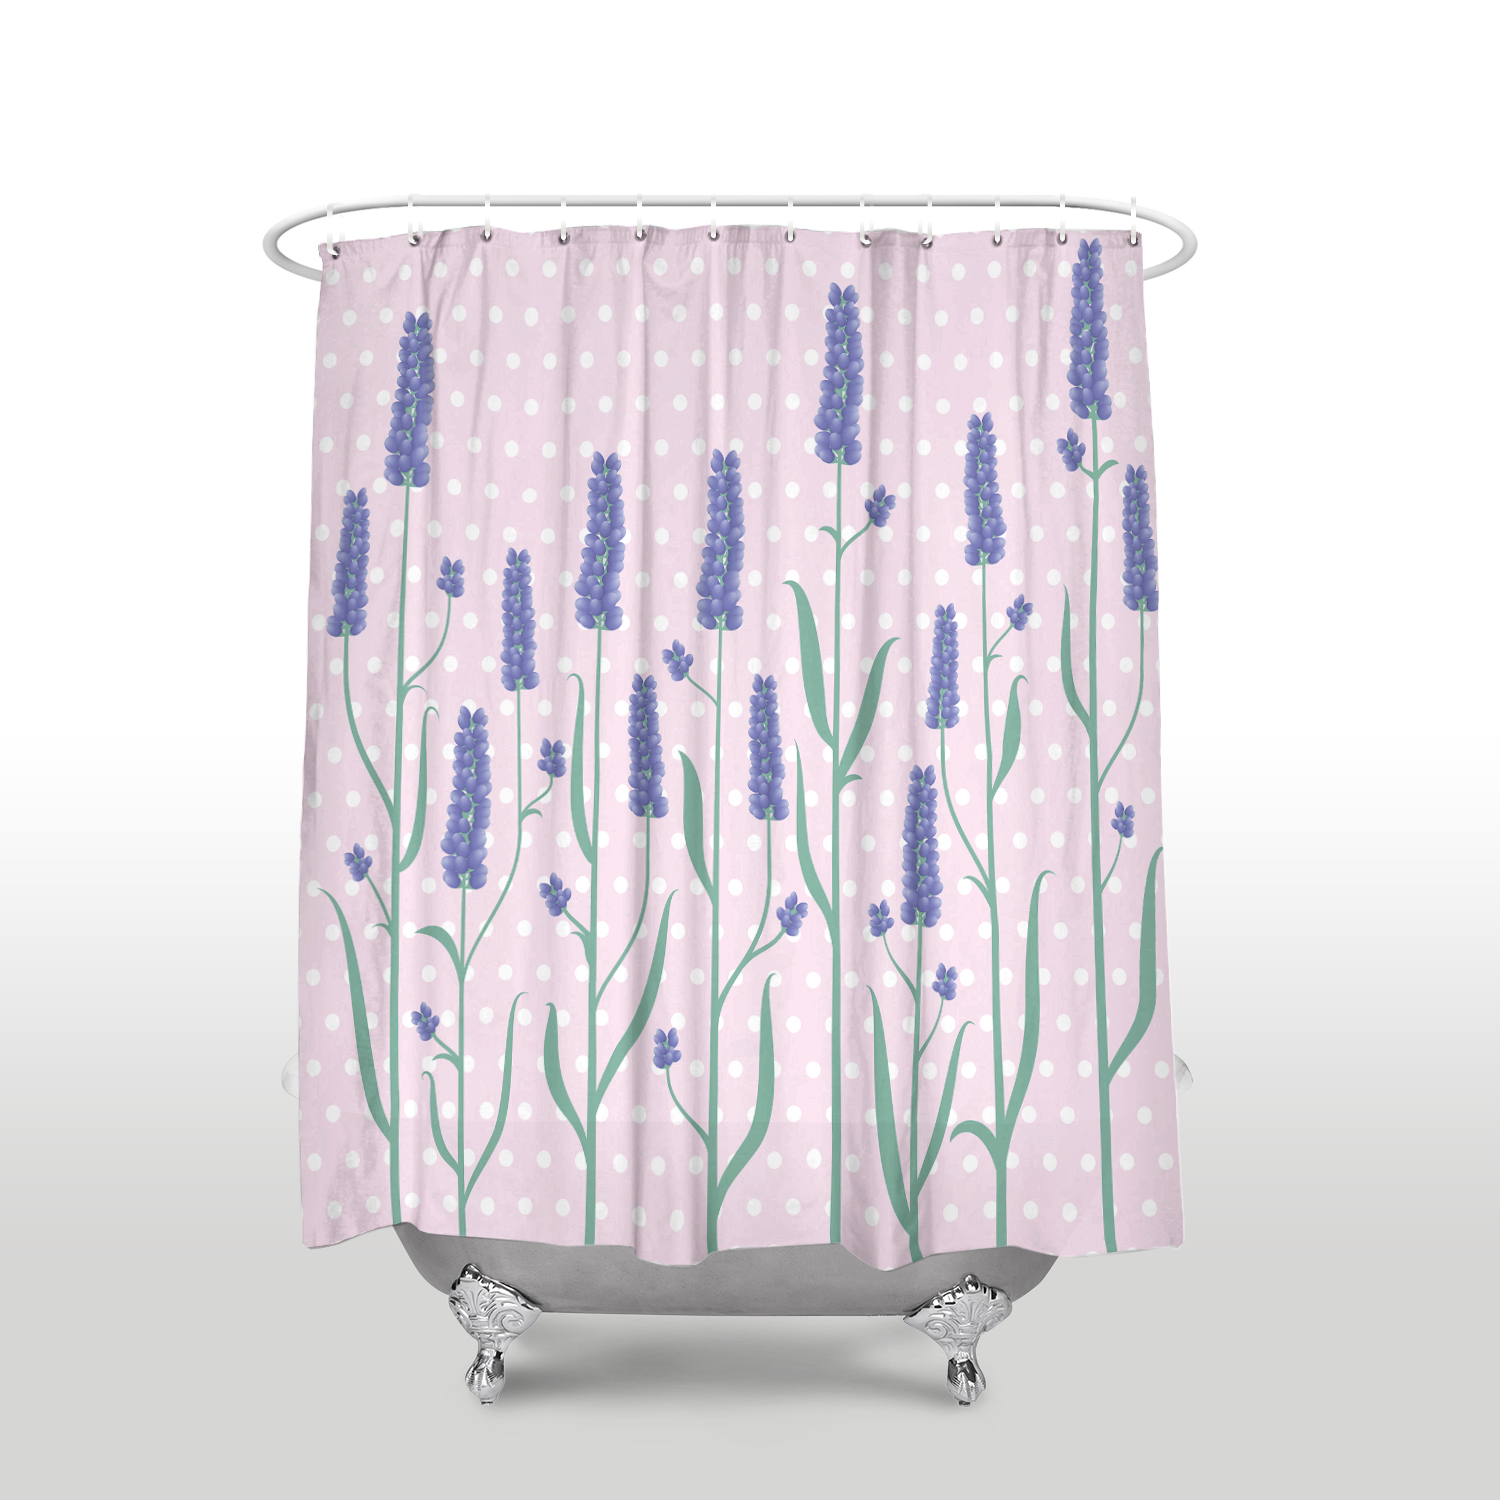 Lavender Shower Curtains Us 16 97 45 Off Lavender Pattern Love Shower Curtain Waterproof Polyester Fabric Flower Bathroom Decor Printed Shower Curtain Purple Green Pink In